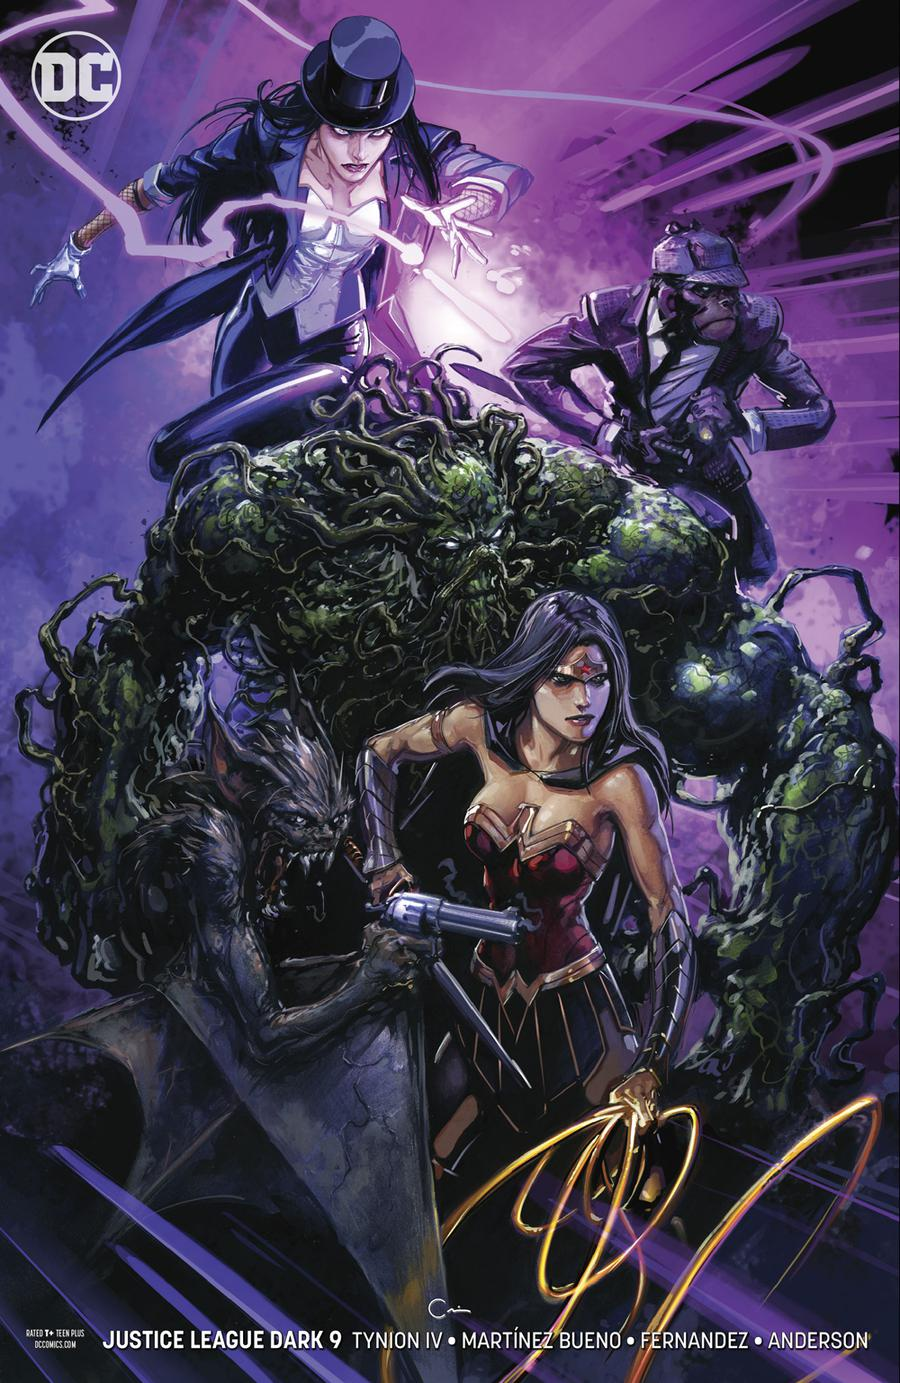 Justice League Dark Vol 2 #9 Cover B Variant Clayton Crain Cover